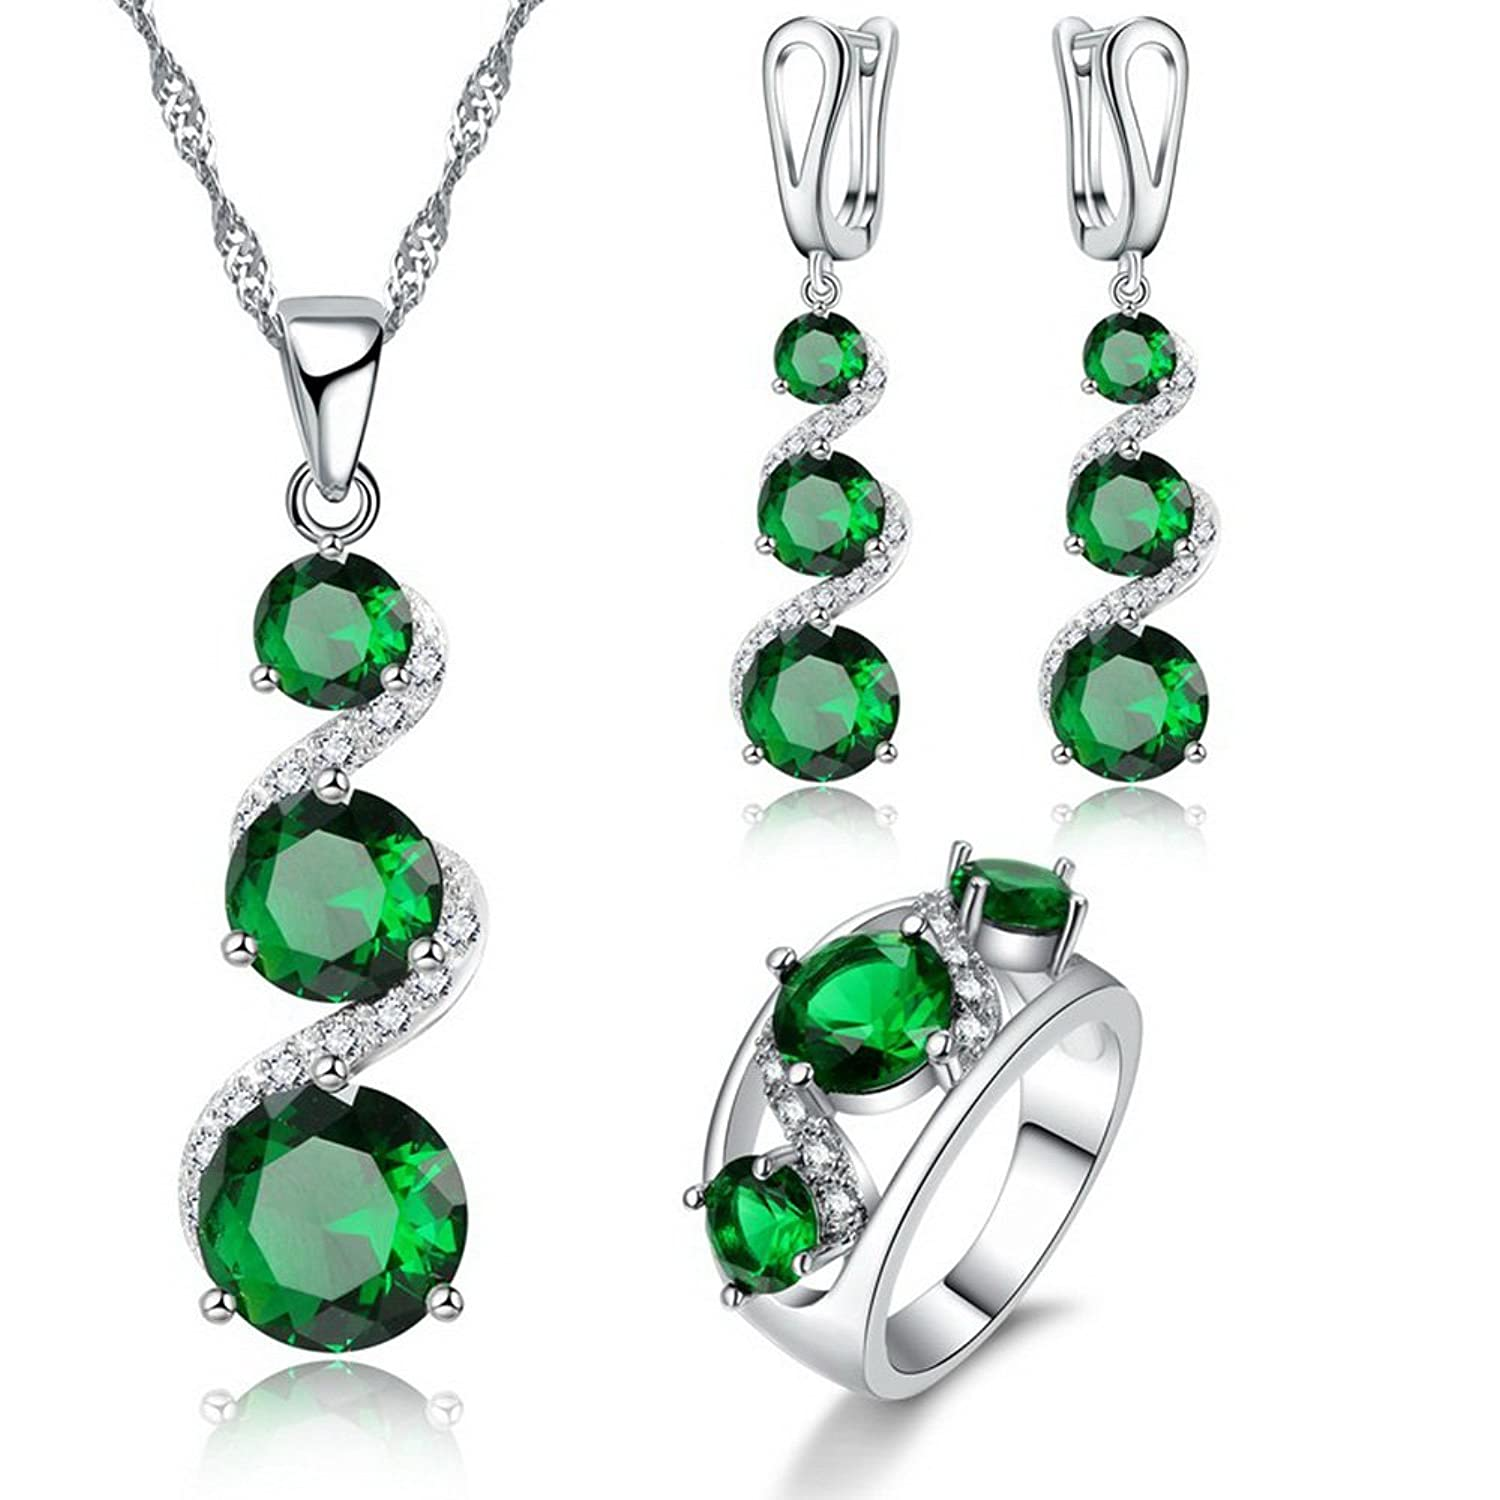 JEMMIN Fashion Bridal Wedding Engagement Jewelry Sets for Women Necklace Earrings Ring